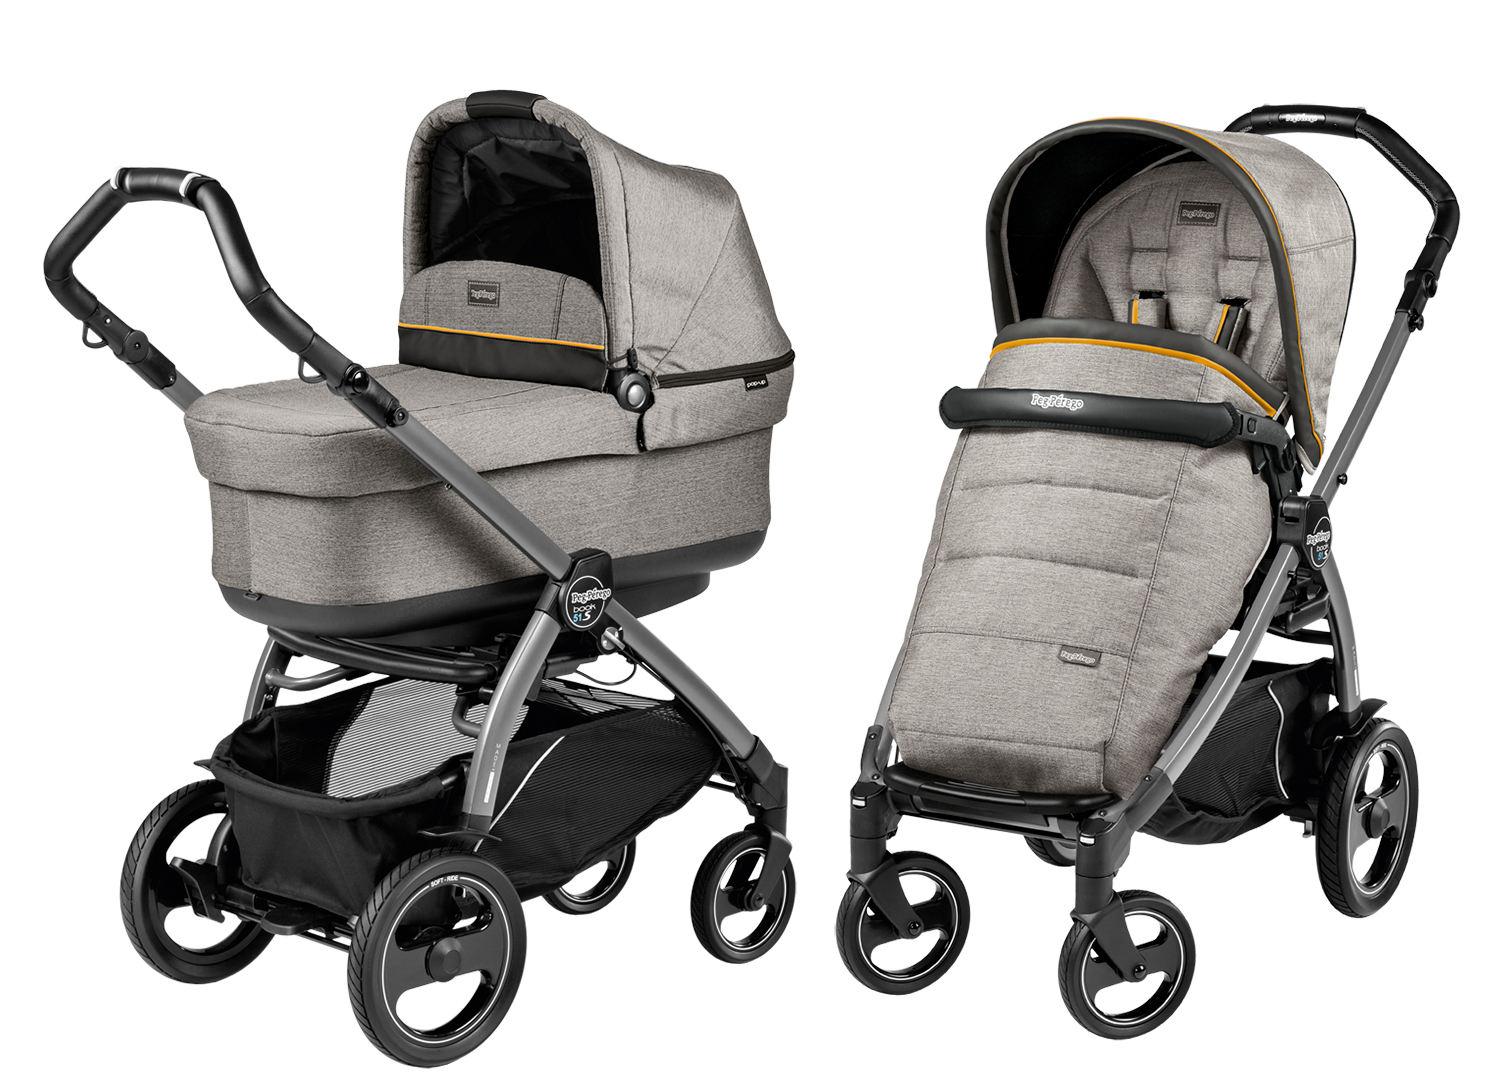 Peg Perego Book Plus 51 S Pop Up Коляска 2 в 1 Peg Perego Book 51 S Pop Up Modular шасси Jet